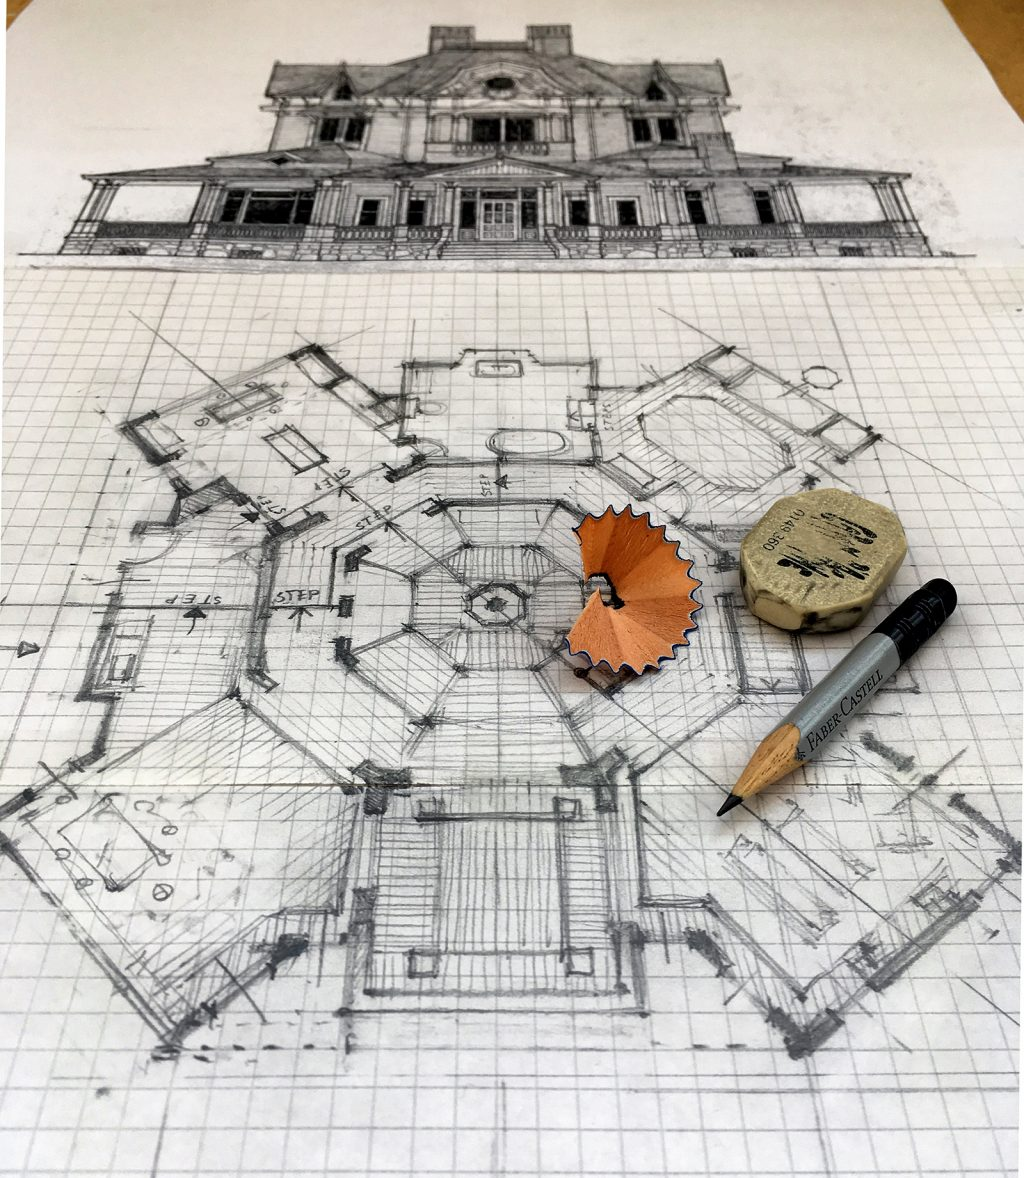 The workings and sketches of the Mother! floor plan in progress